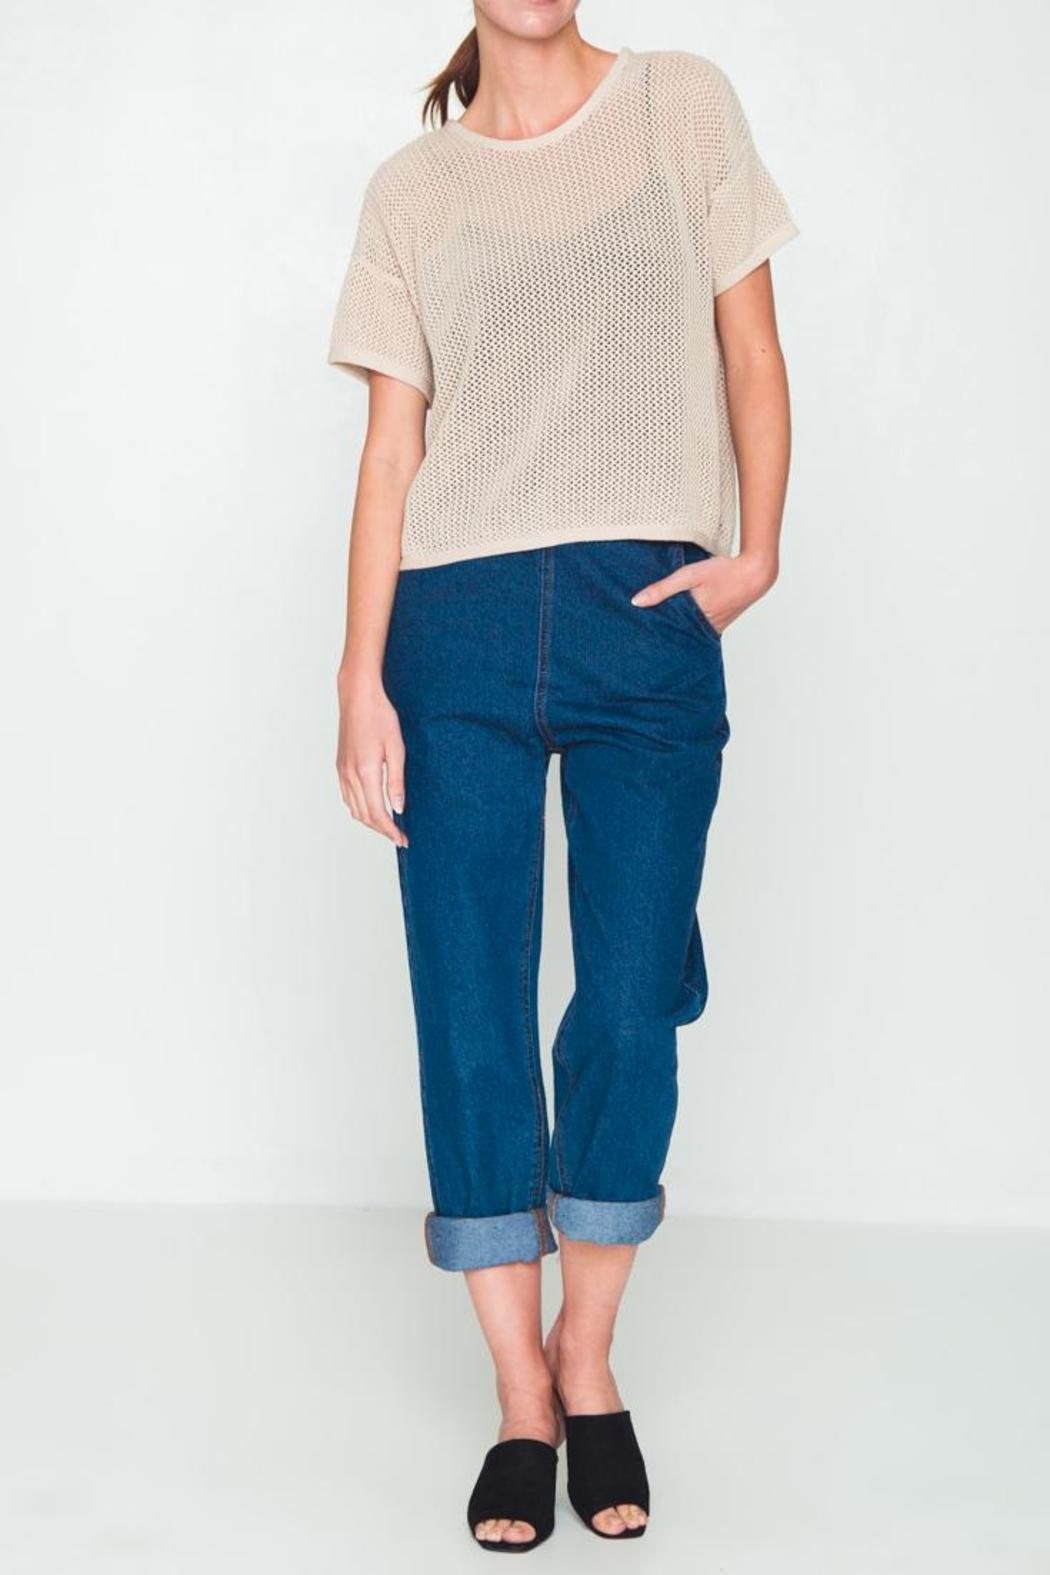 Movint Oversized Cropped Sweater from SoHo by Mo:Vint — Shoptiques